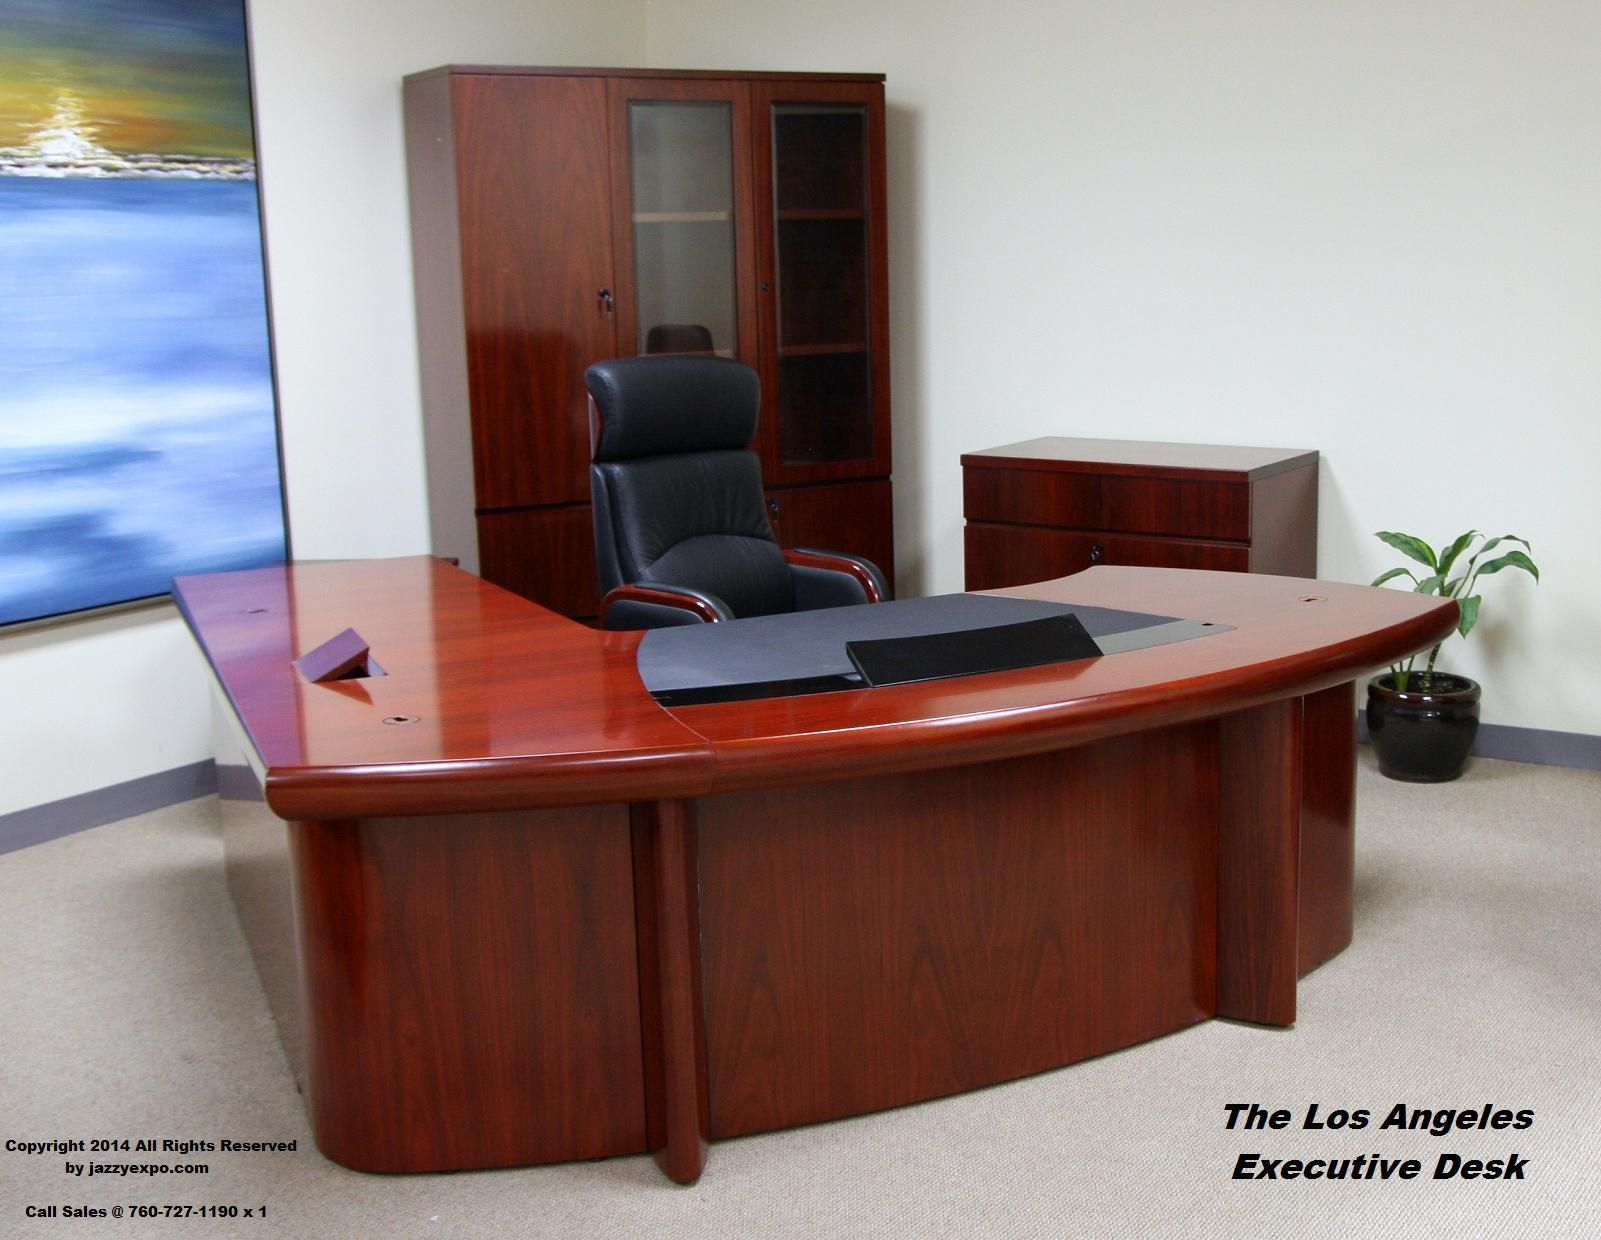 angeles modern los panels front open pin the port data view executive desk